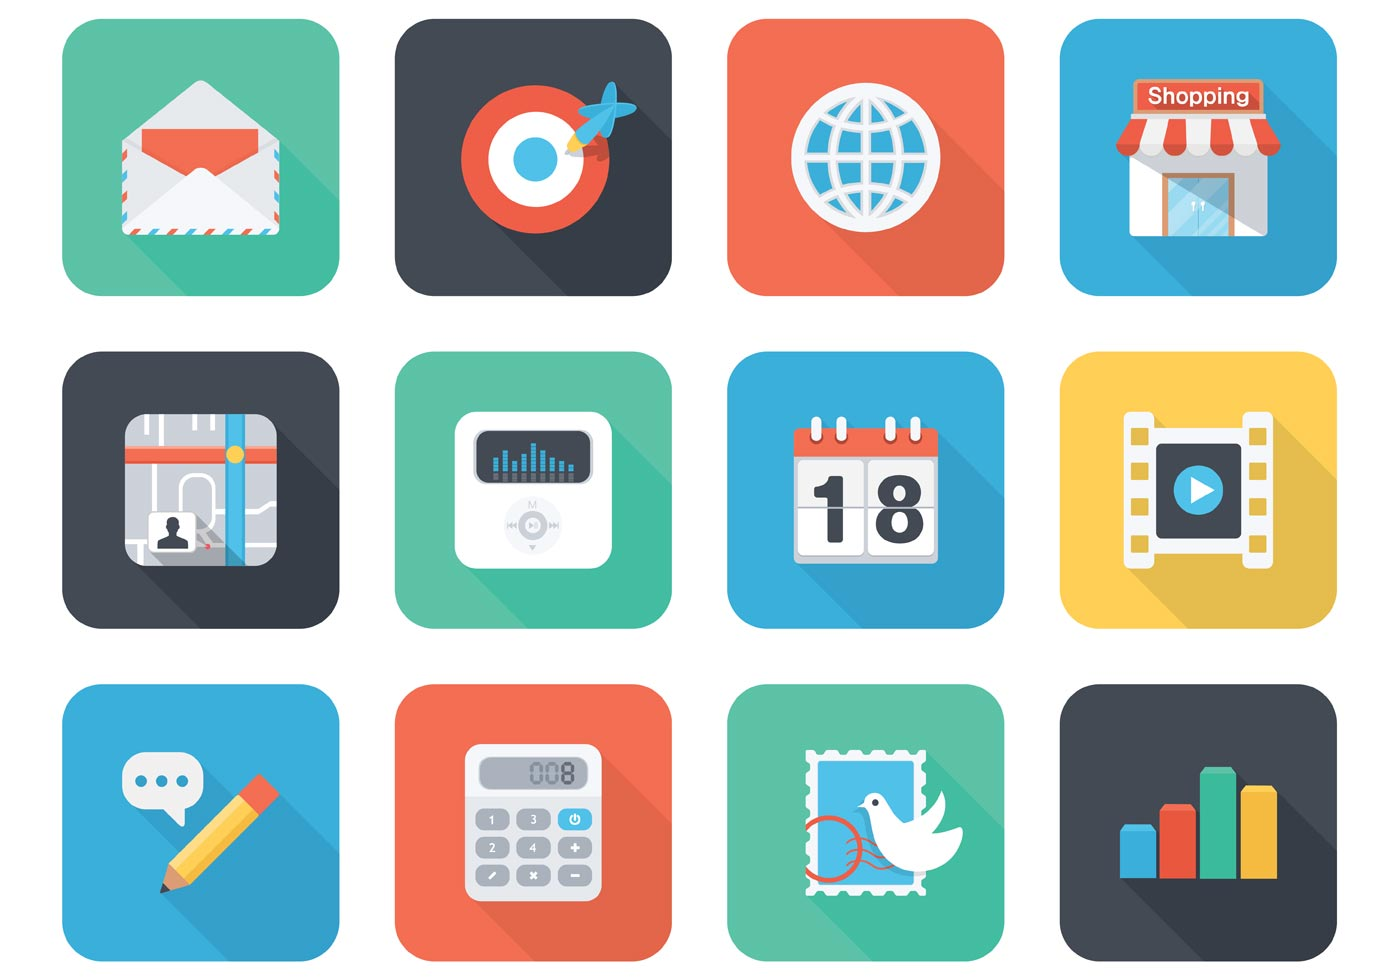 Free Flat App Vector Icons For Mobile And Web Download